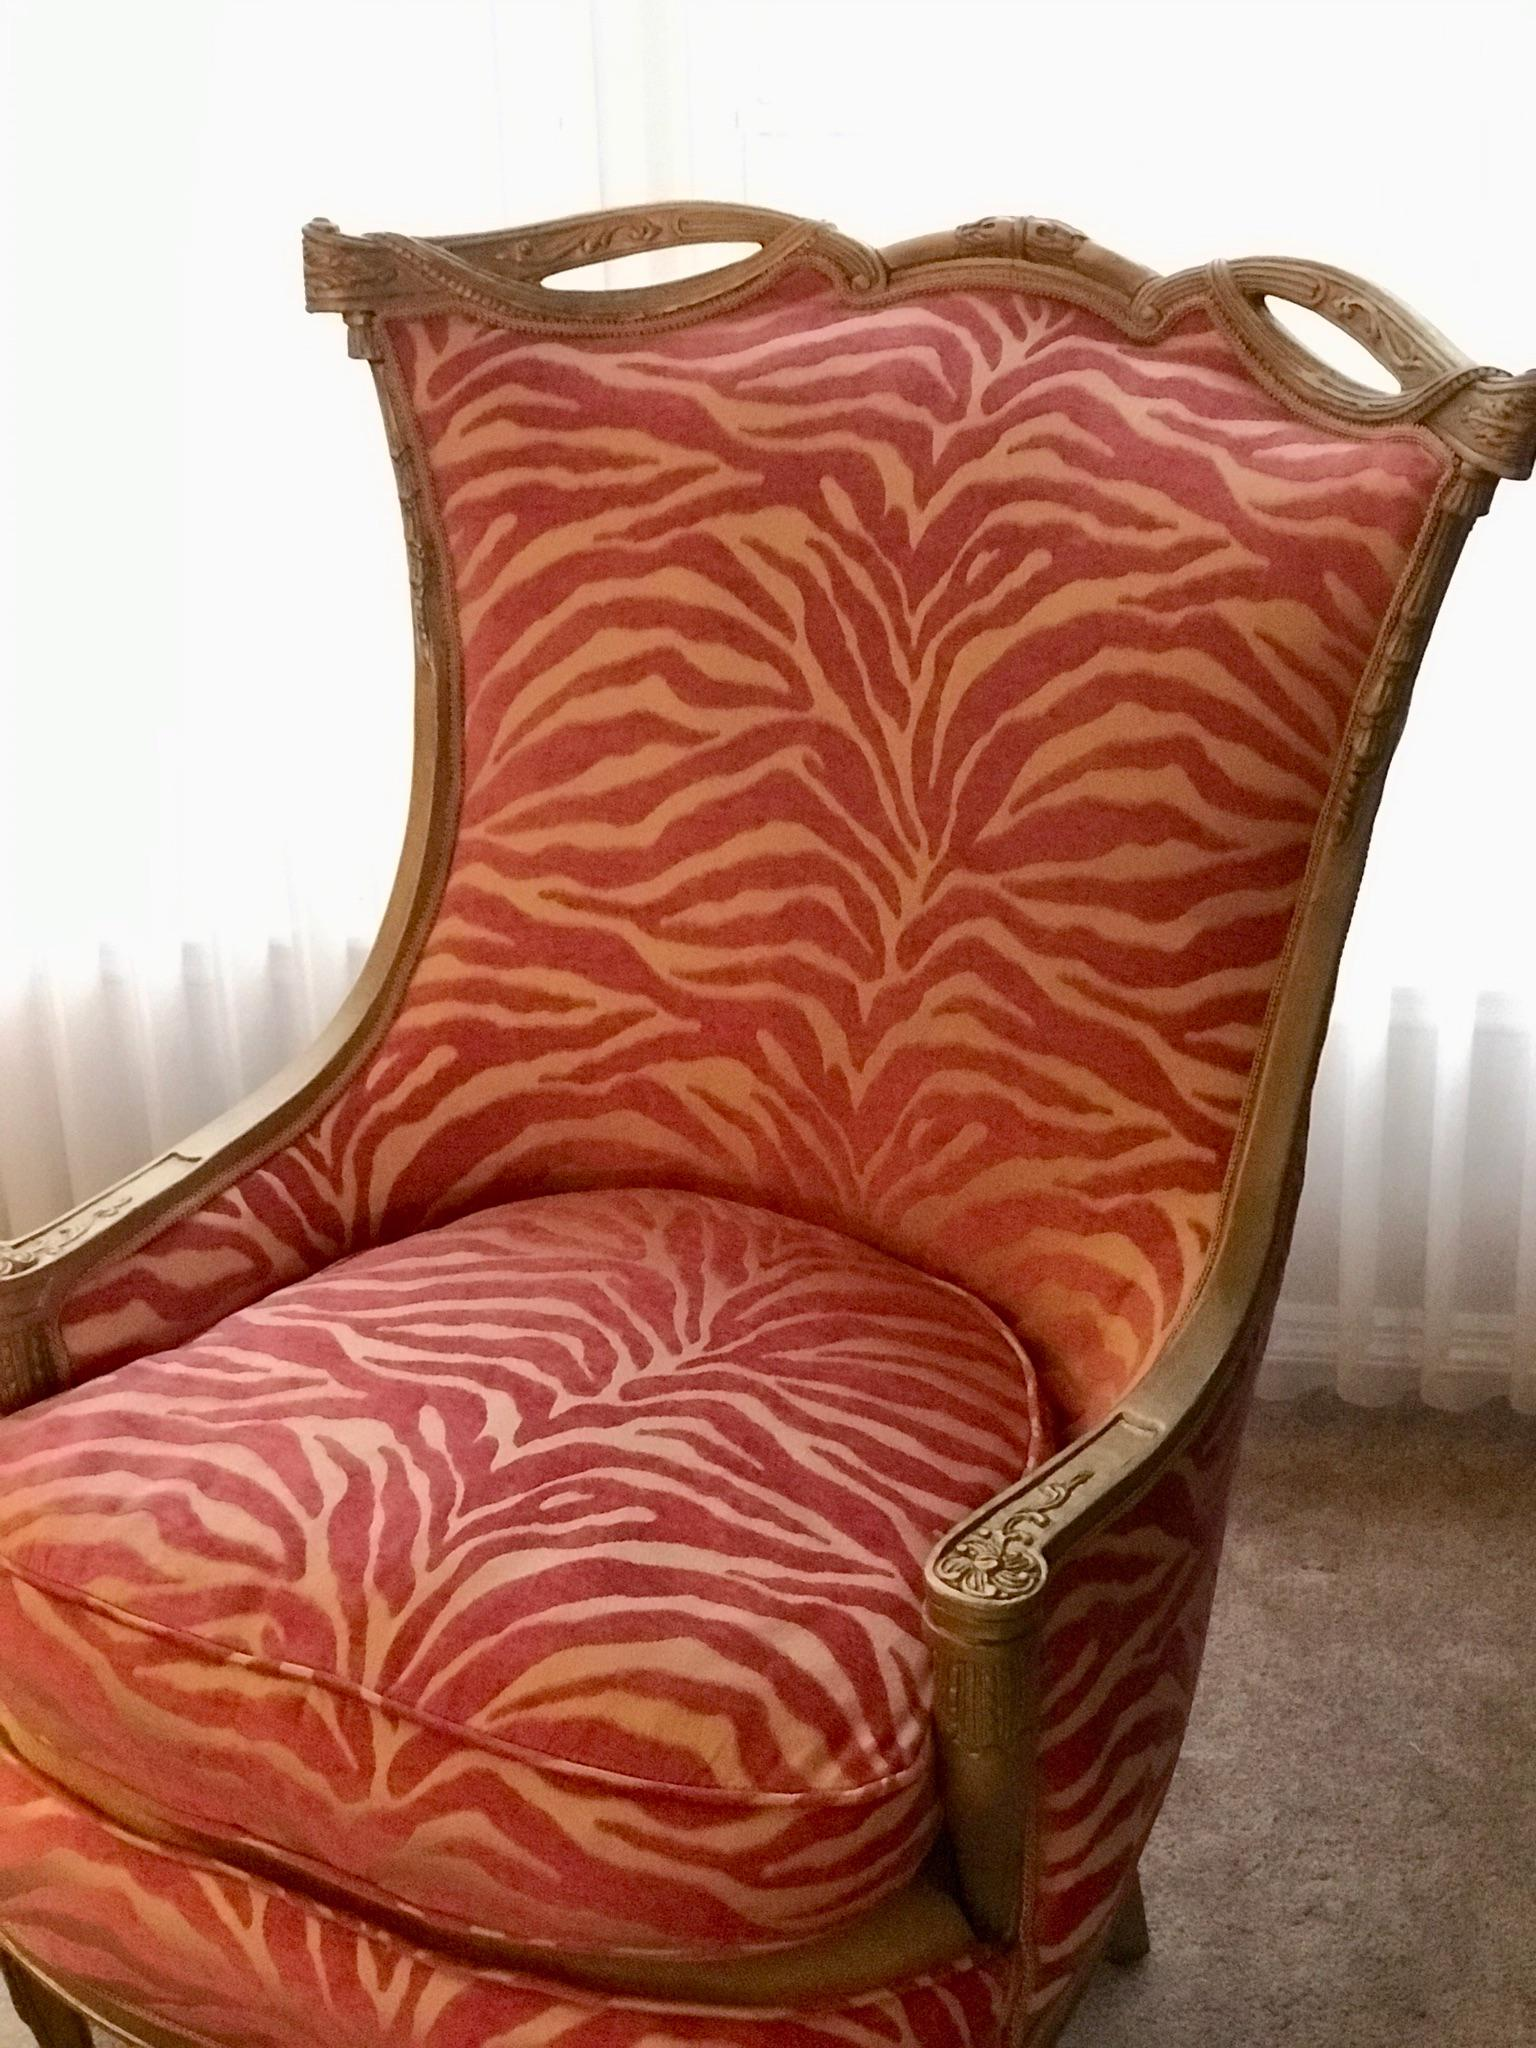 Charming Pink Zebra Print Upholstered Chair With Gold Frame   Image 3 Of 7